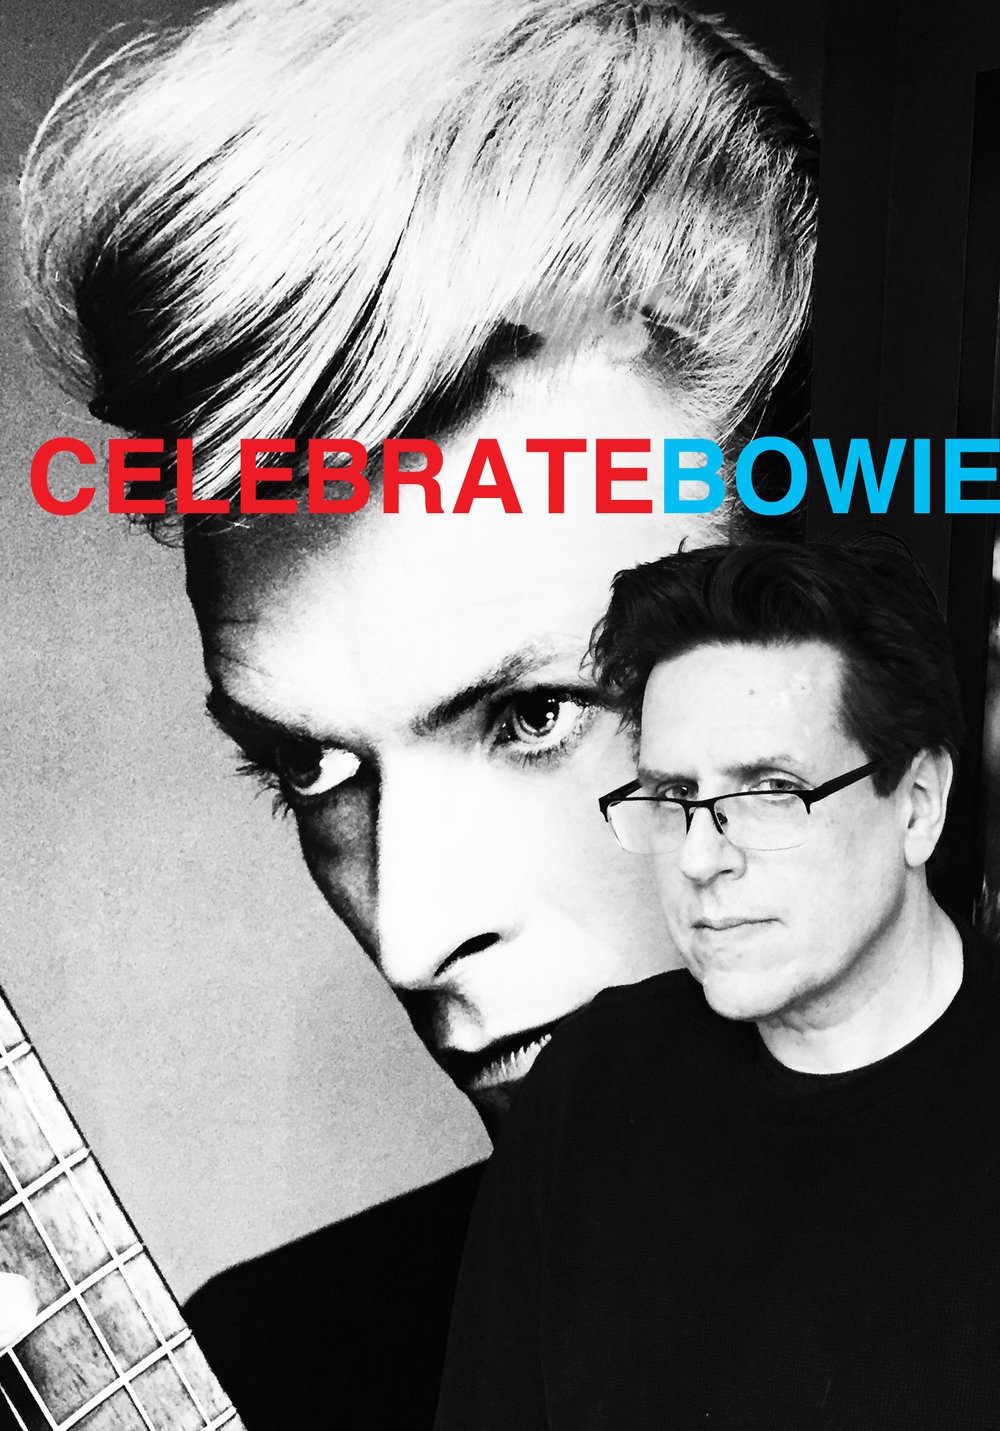 CelebrateBowiefix012117 copy 2.jpg